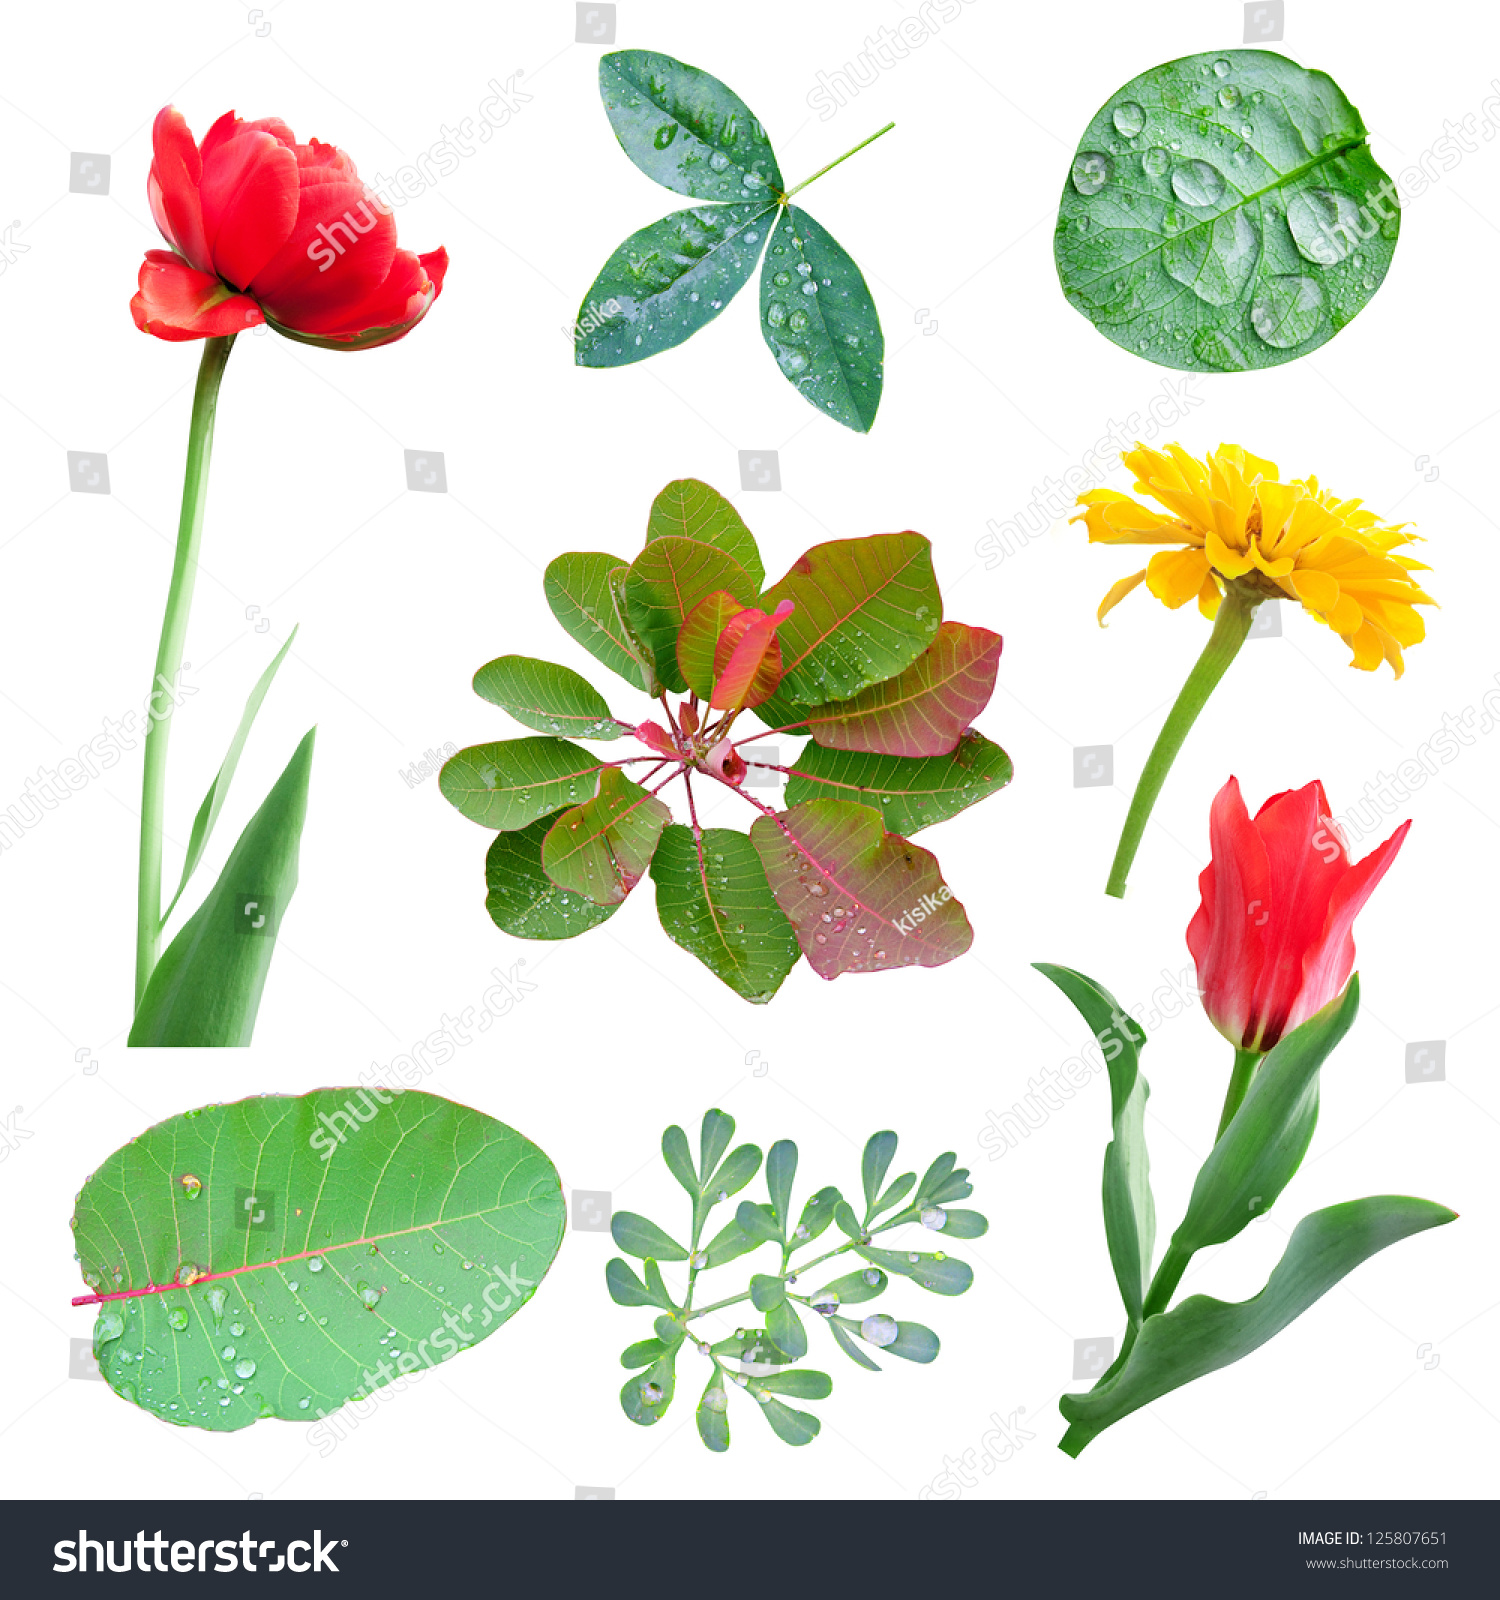 Spring Green Leaves And Flowers Background With Plants: Spring Set Of Leaves And Flowers